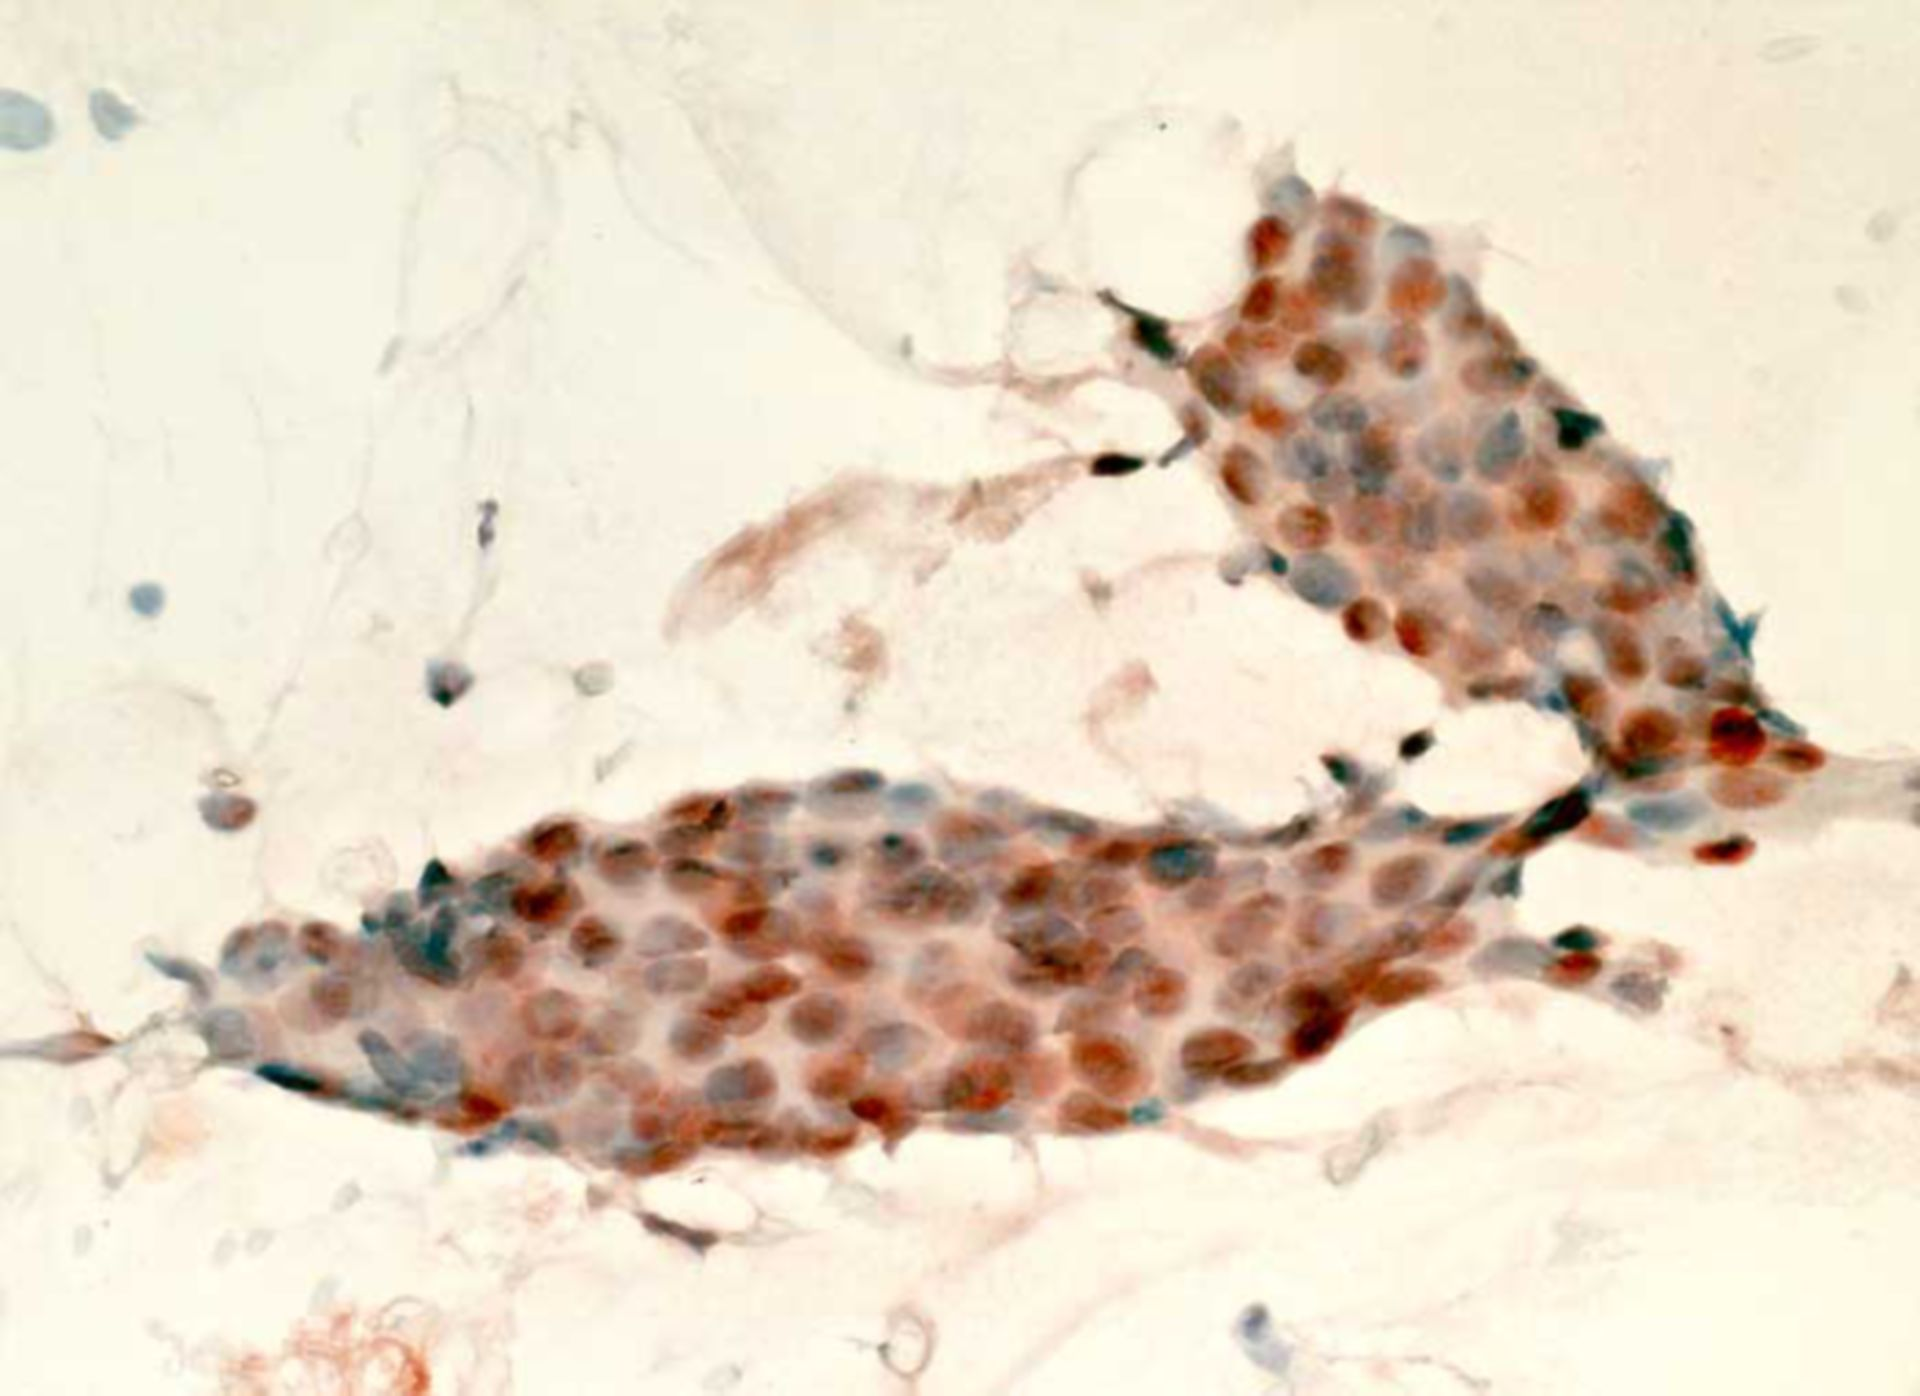 Invasive ductal carcinoma of the breast: lymph node metastasis